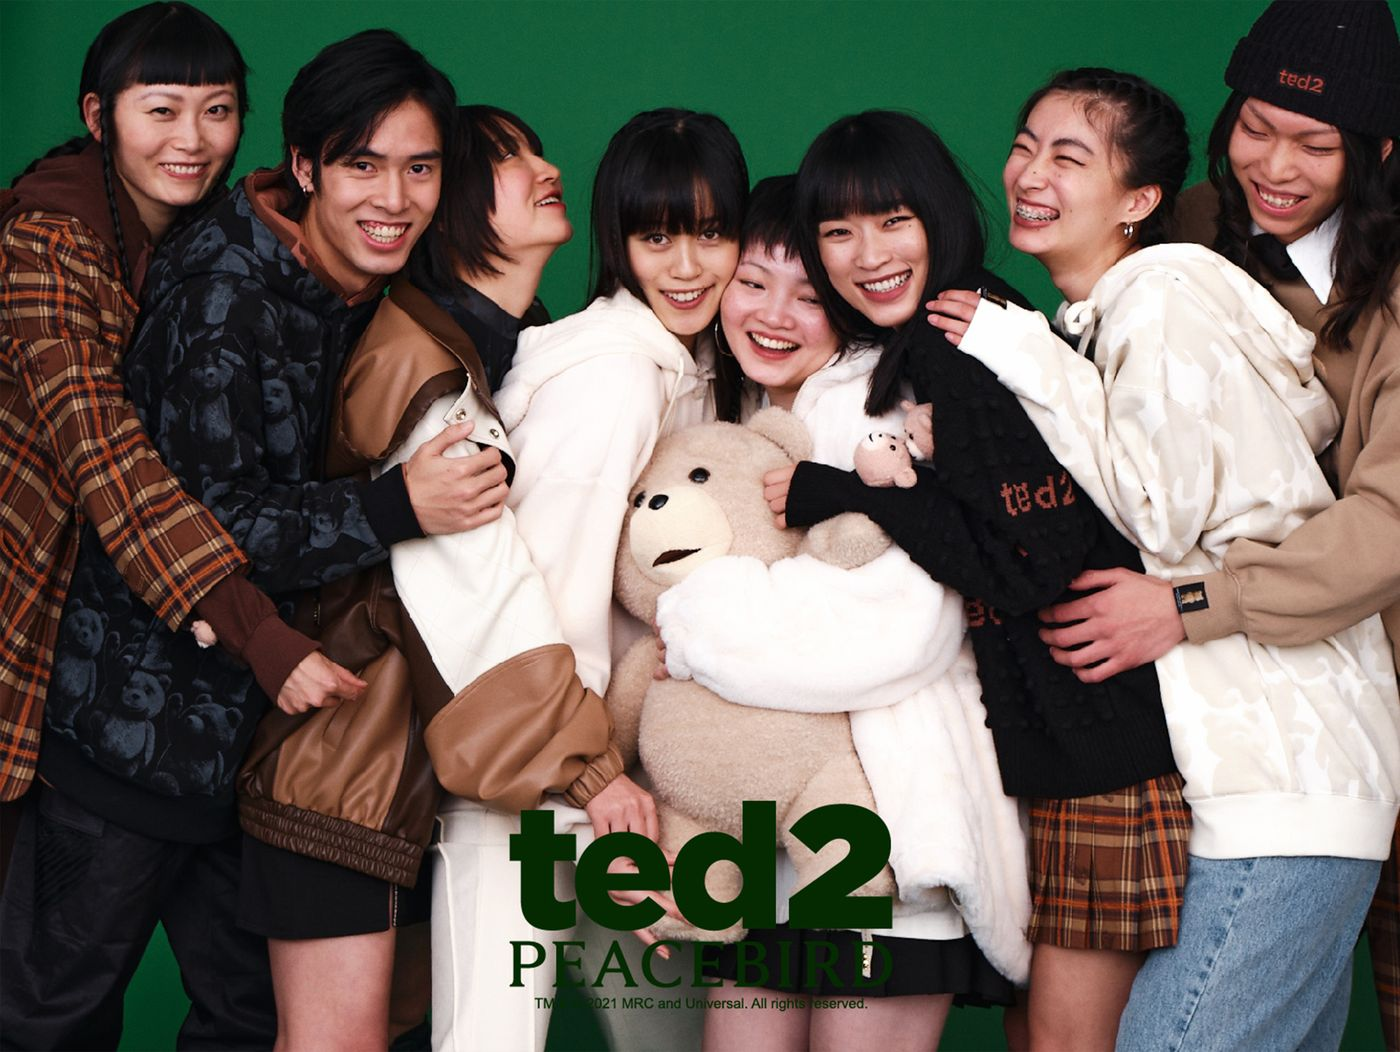 Ted 2 x Peacebird apparel collection